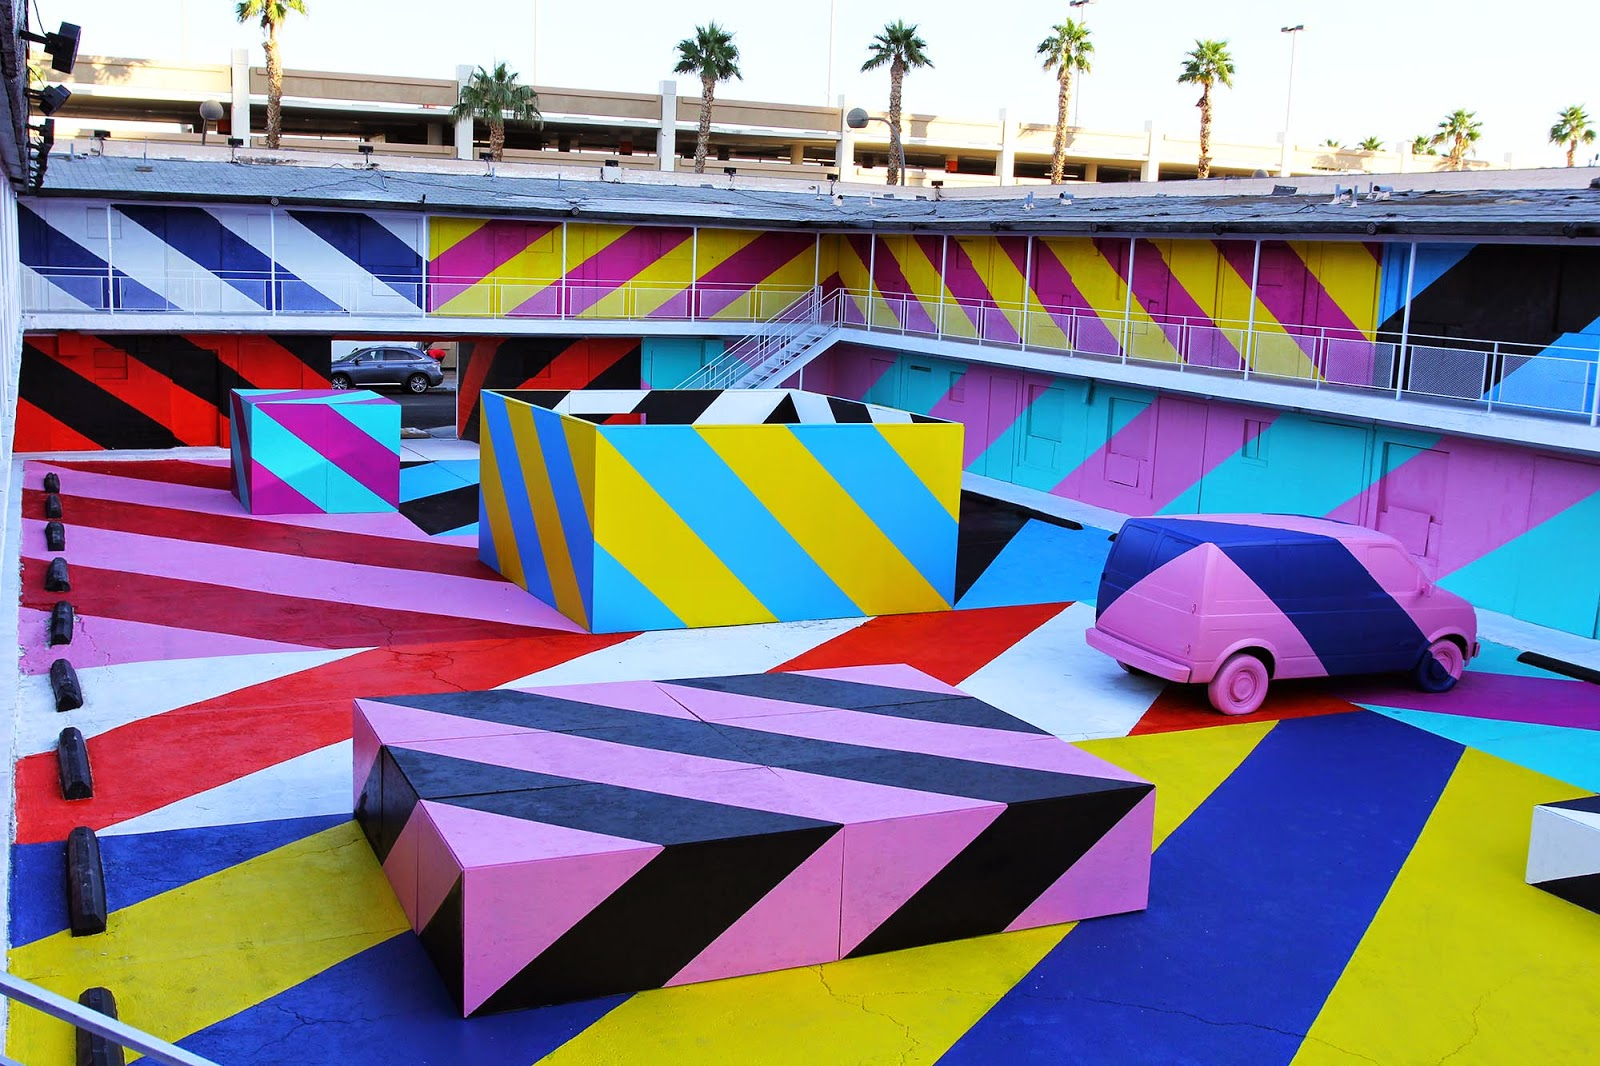 After more than a week of work and more than 50 gallons of paint, Maser just wrapped up the #MASERMOTEL in downtown Las Vegas with JustKids and Life Is Beautiful.